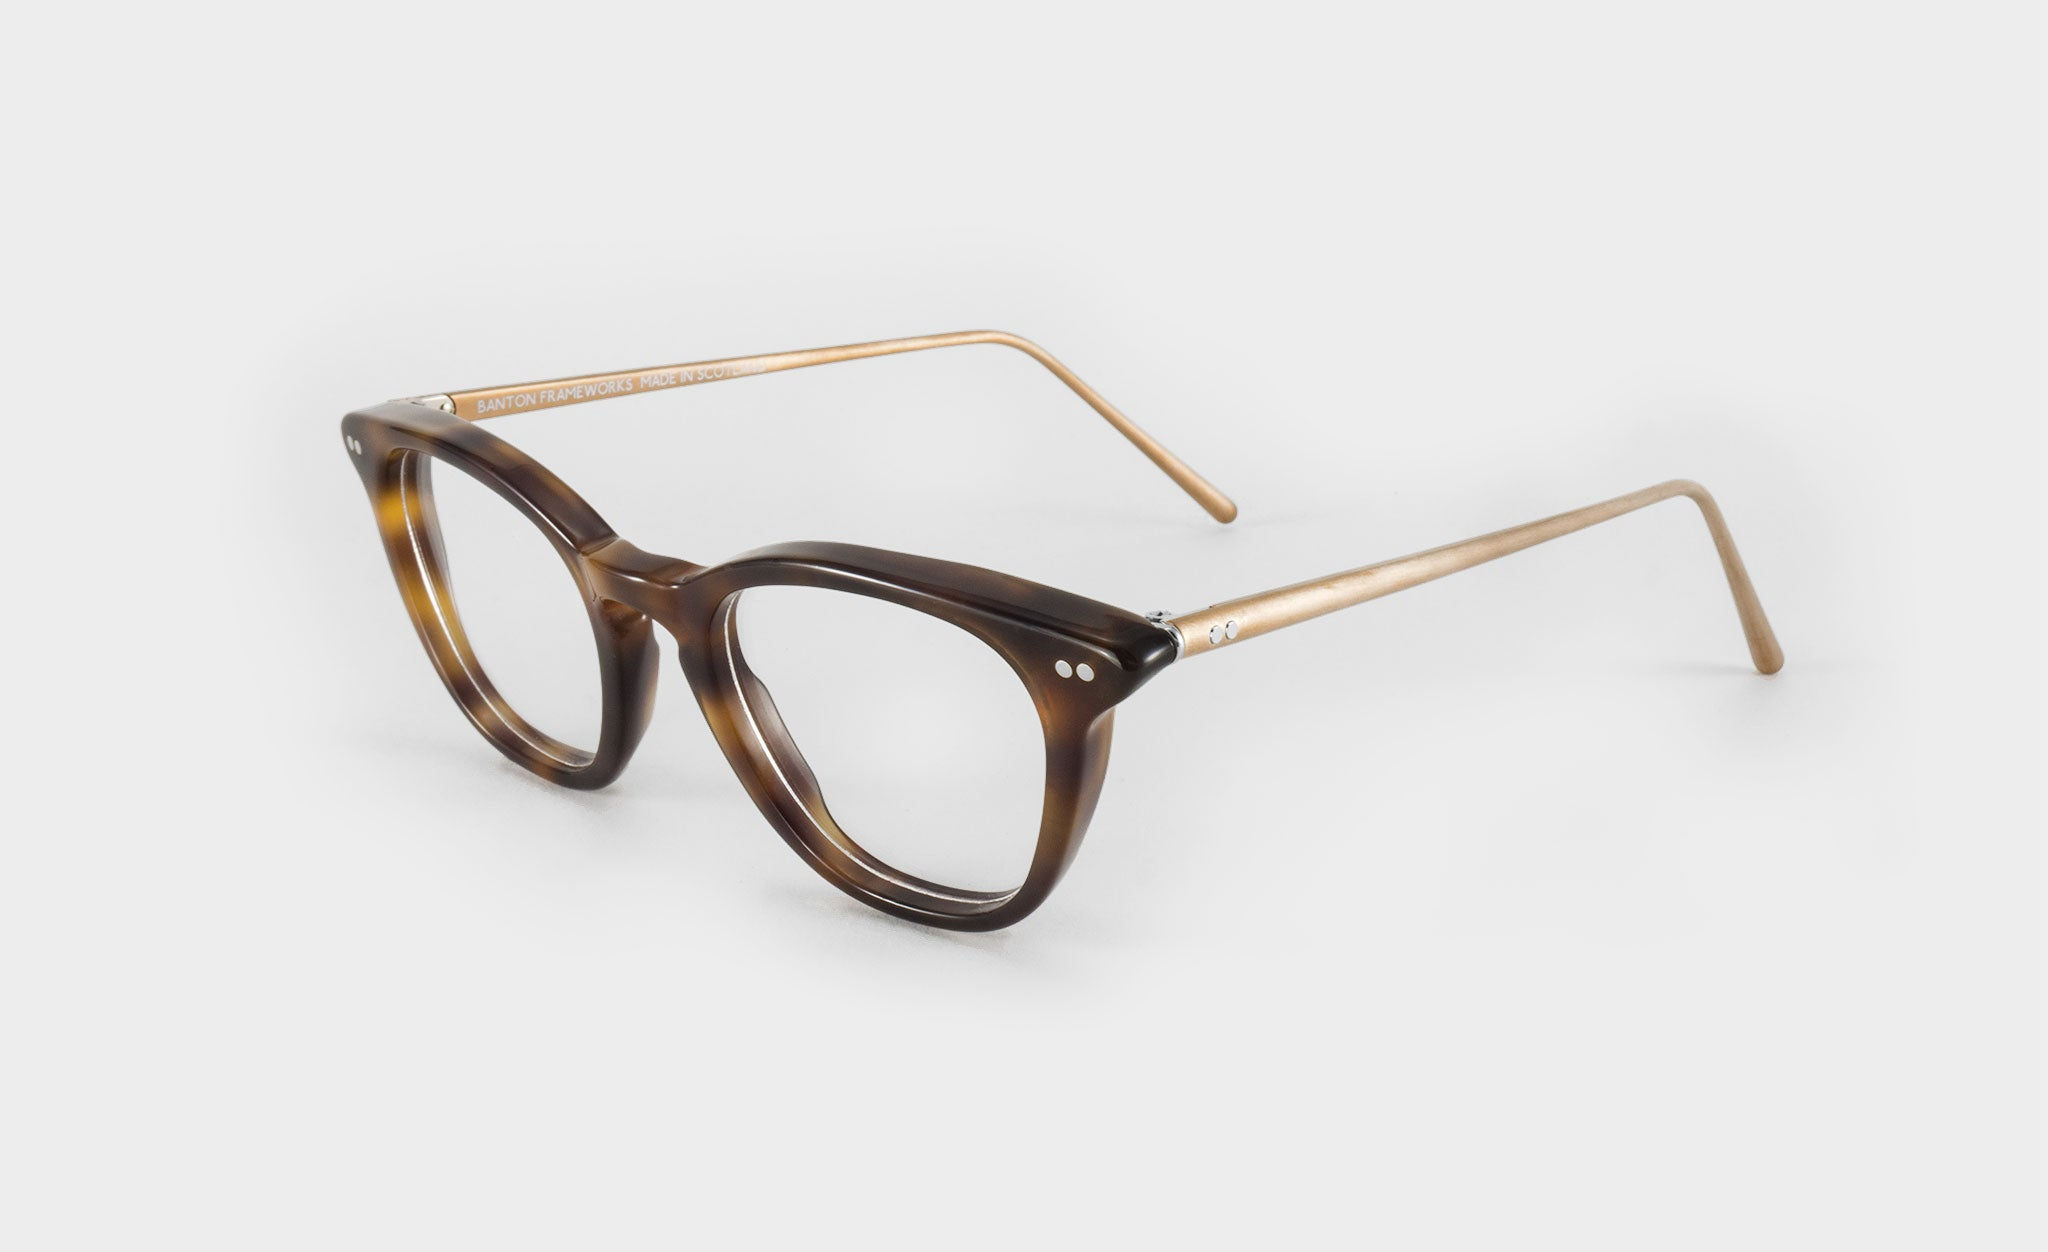 mens tortoise shell glasses side view